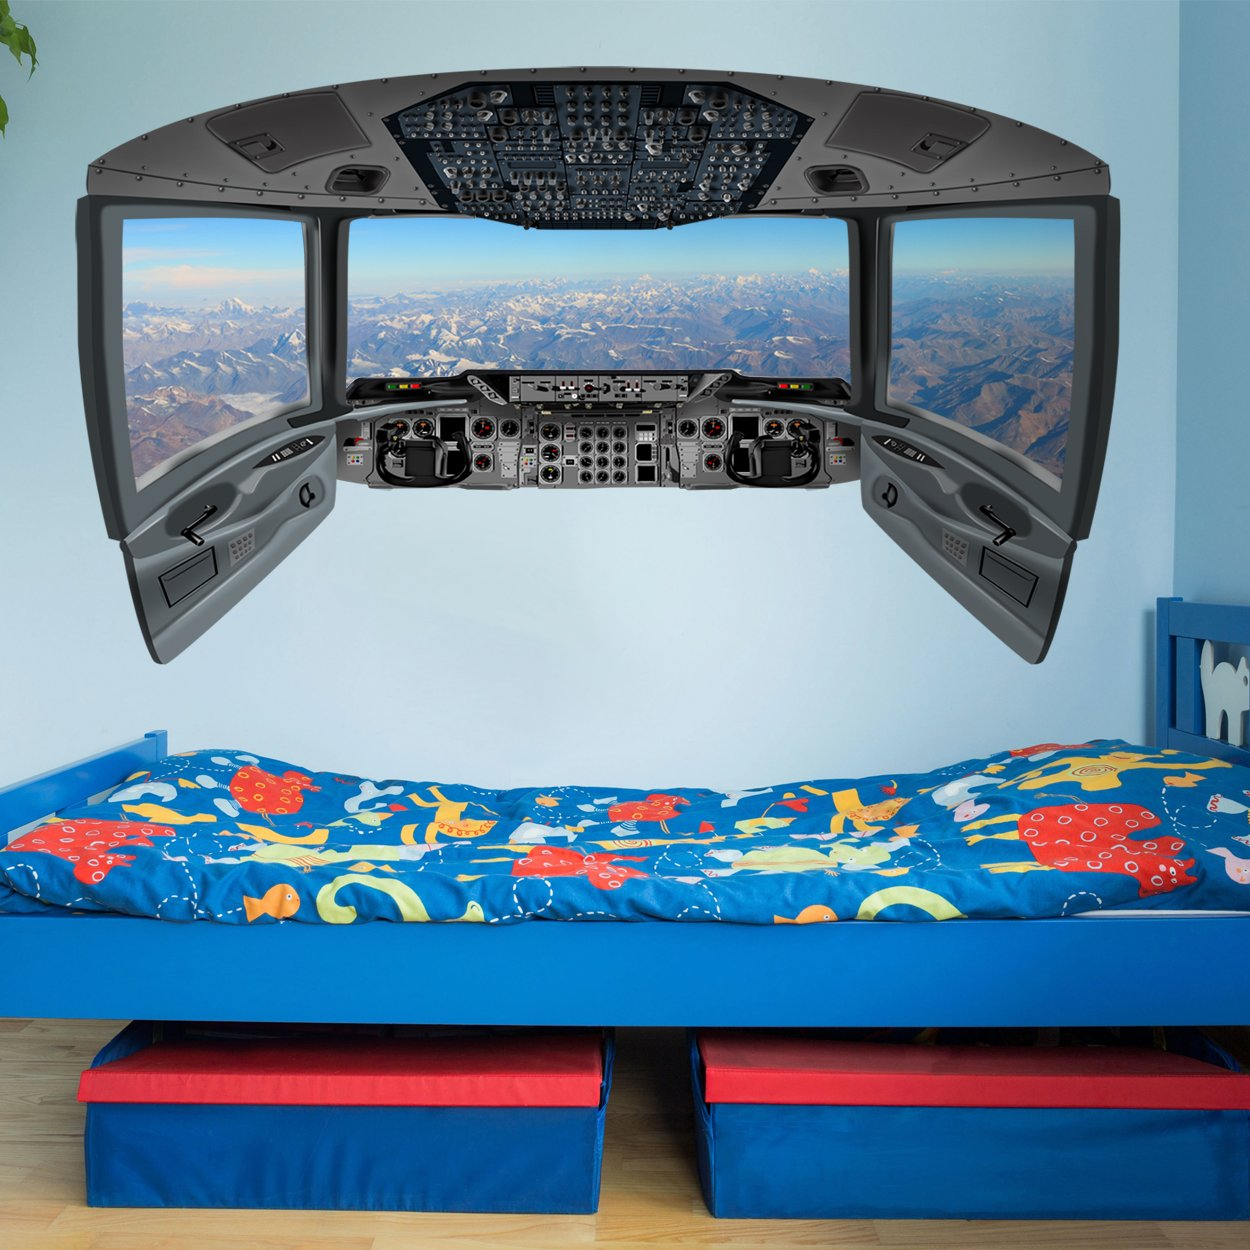 VWAQ Mountain View Wall Mural | Cockpit Wall Decal - CP14 - VWAQ Vinyl Wall Art Quotes and Prints